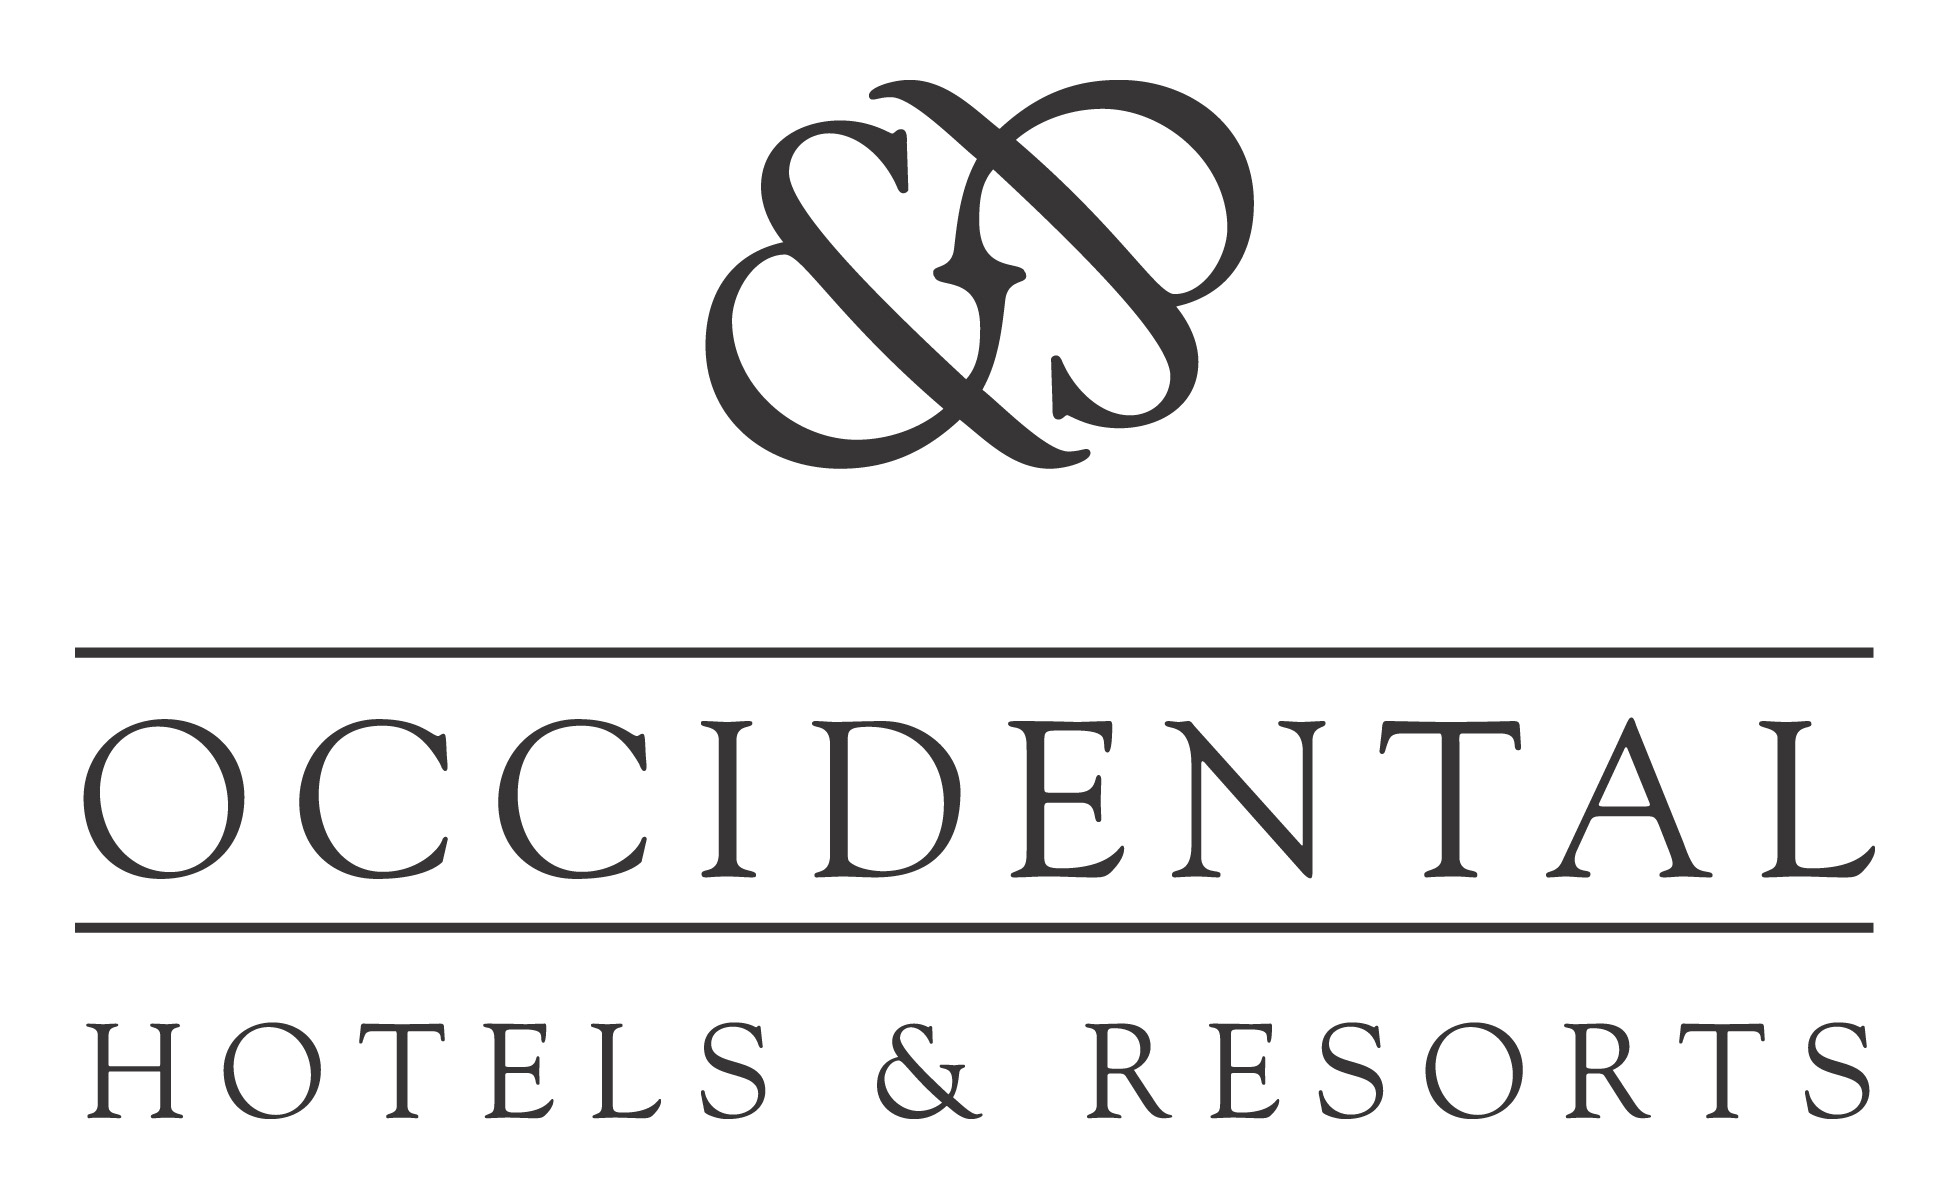 Occidentals Hotels and Resorts